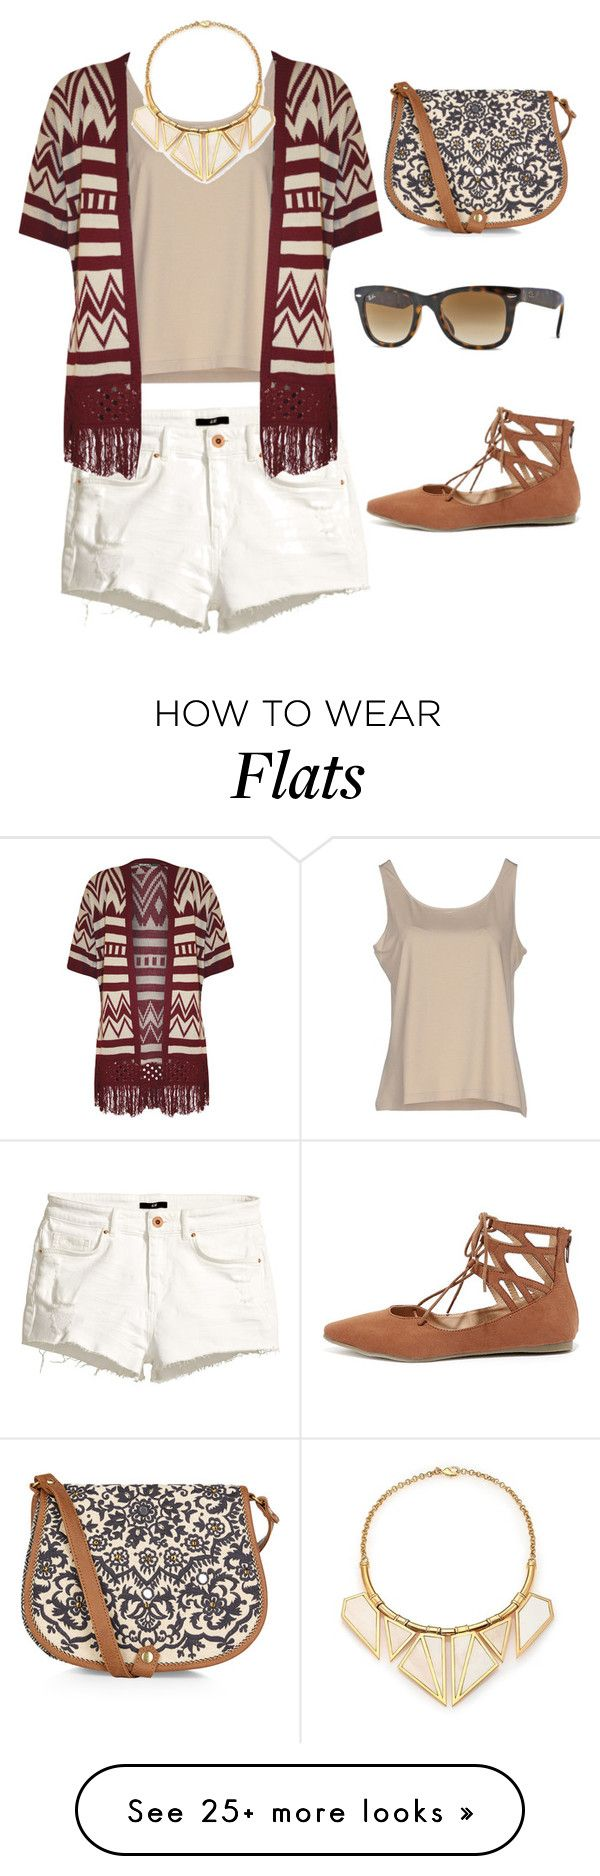 """Untitled #573"" by krissybob on Polyvore featuring H&M, D.Exterior, WearAll, Ray-Ban, Liliana, A Peace Treaty and Accessorize"